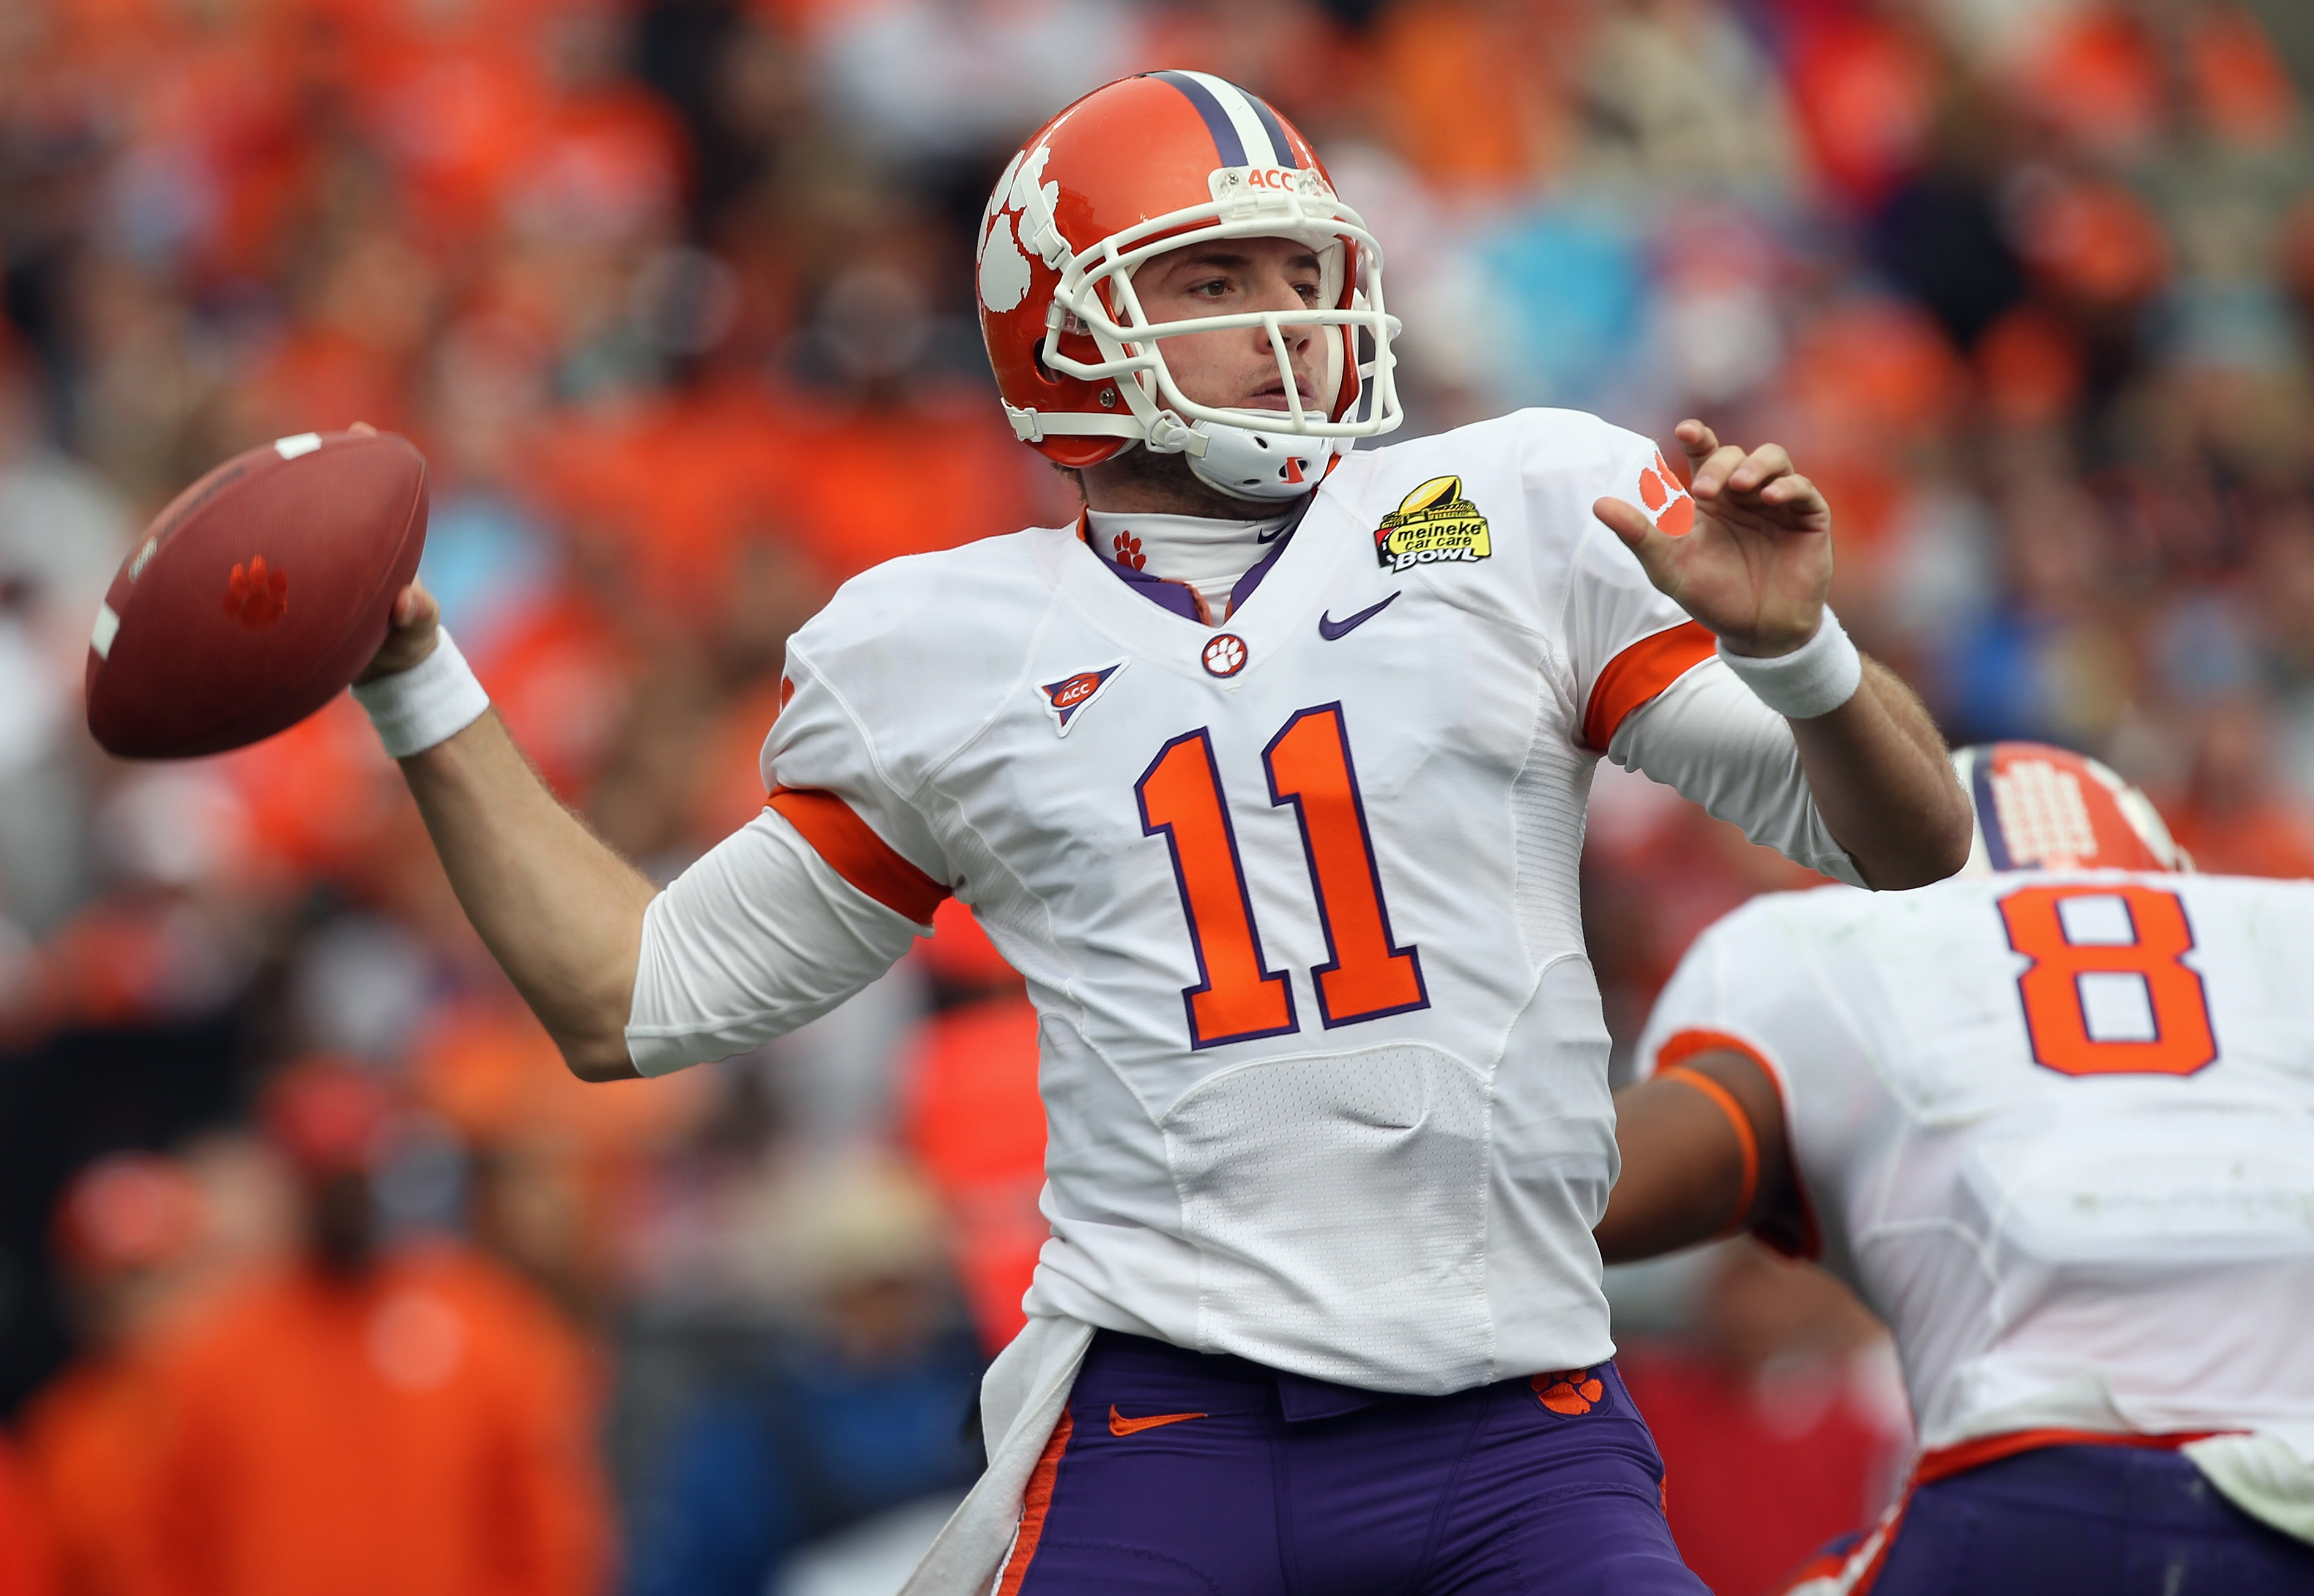 CHARLOTTE, NC - DECEMBER 31:  Kyle Parker #11 of the Clemson Tigers drops back to throw a pass against the USF Bulls during their game at Bank of America Stadium on December 31, 2010 in Charlotte, North Carolina.  (Photo by Streeter Lecka/Getty Images)